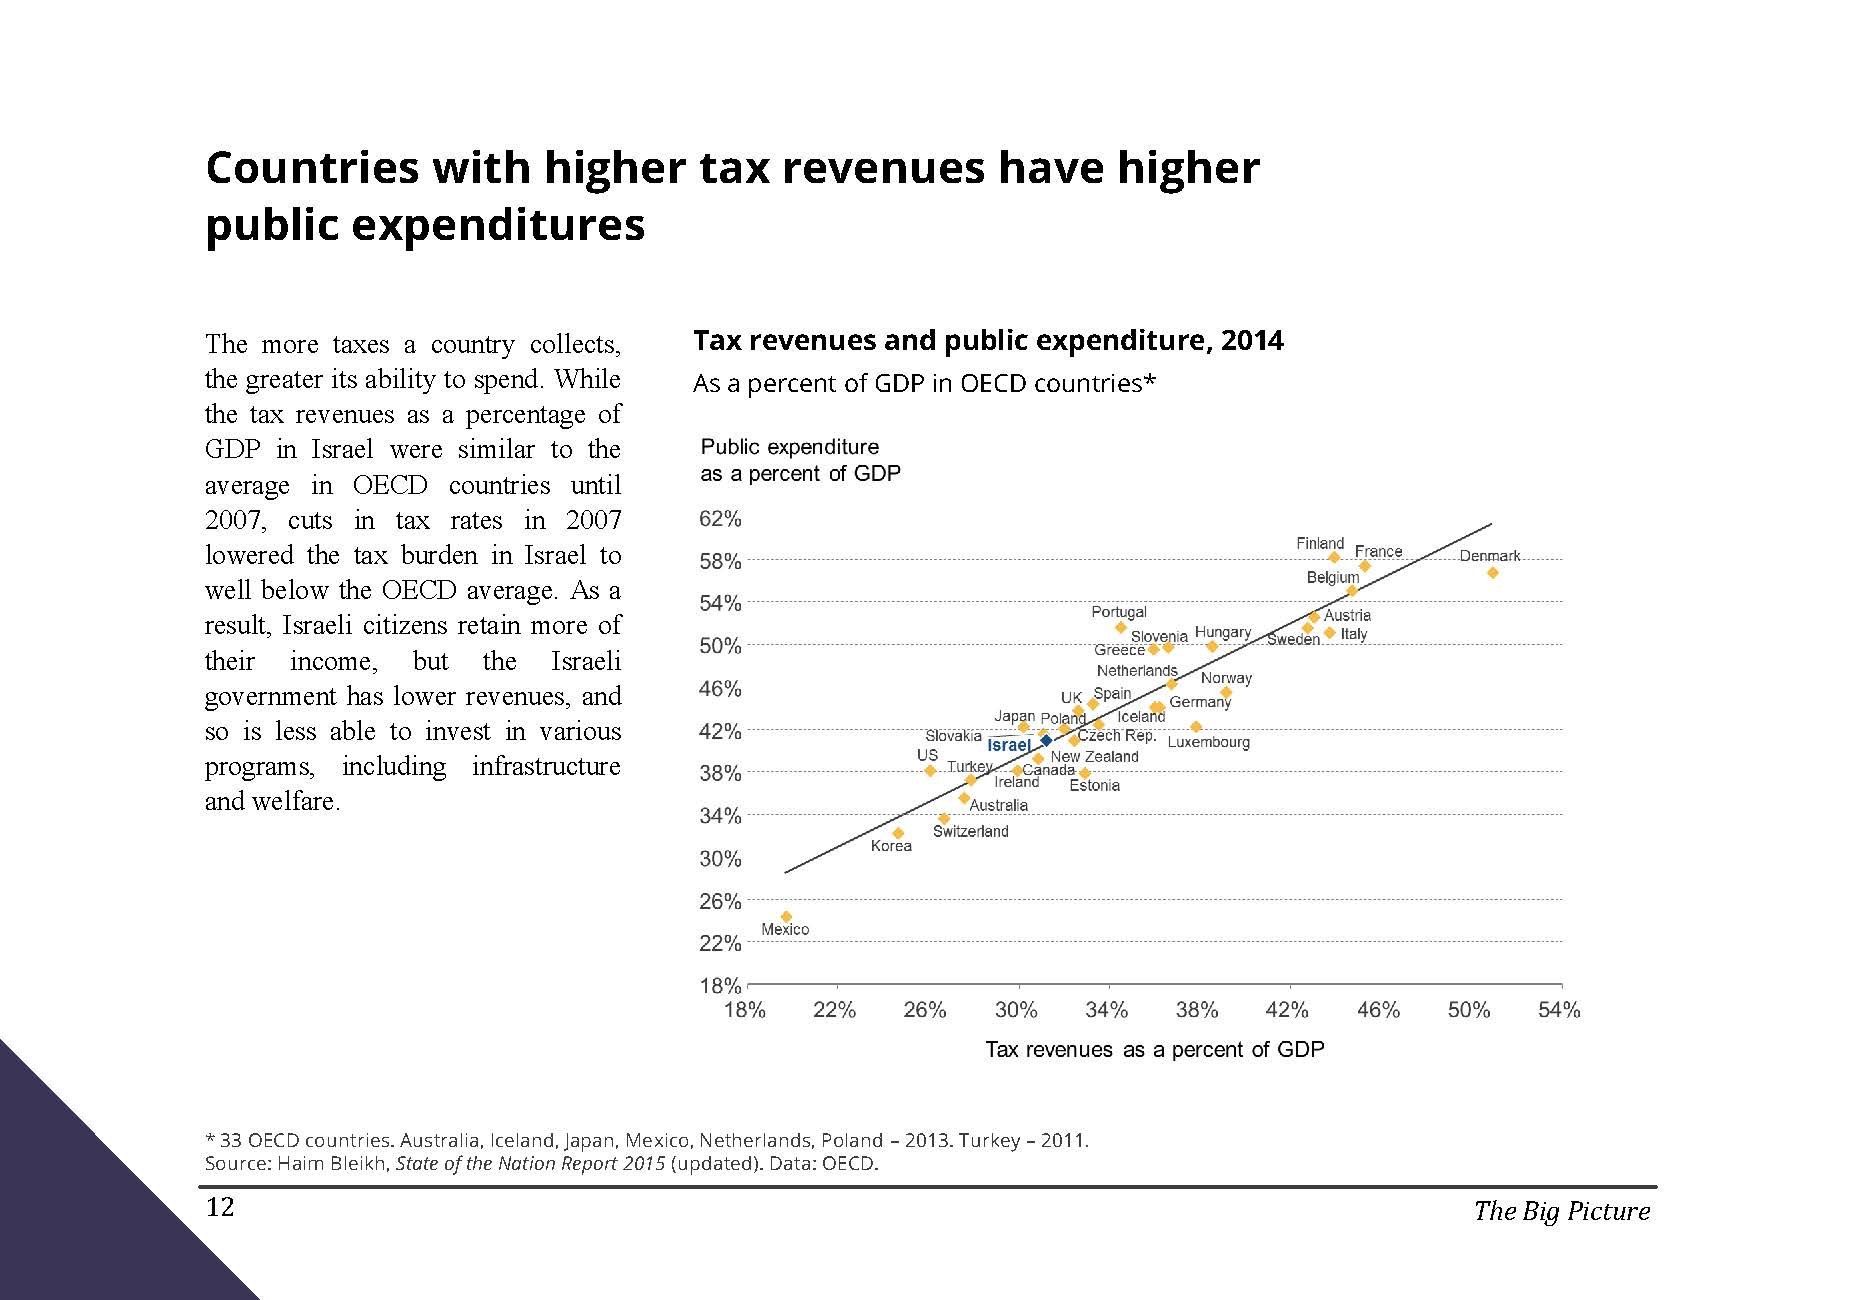 Countries with higher tax revenues have higher public expenditures